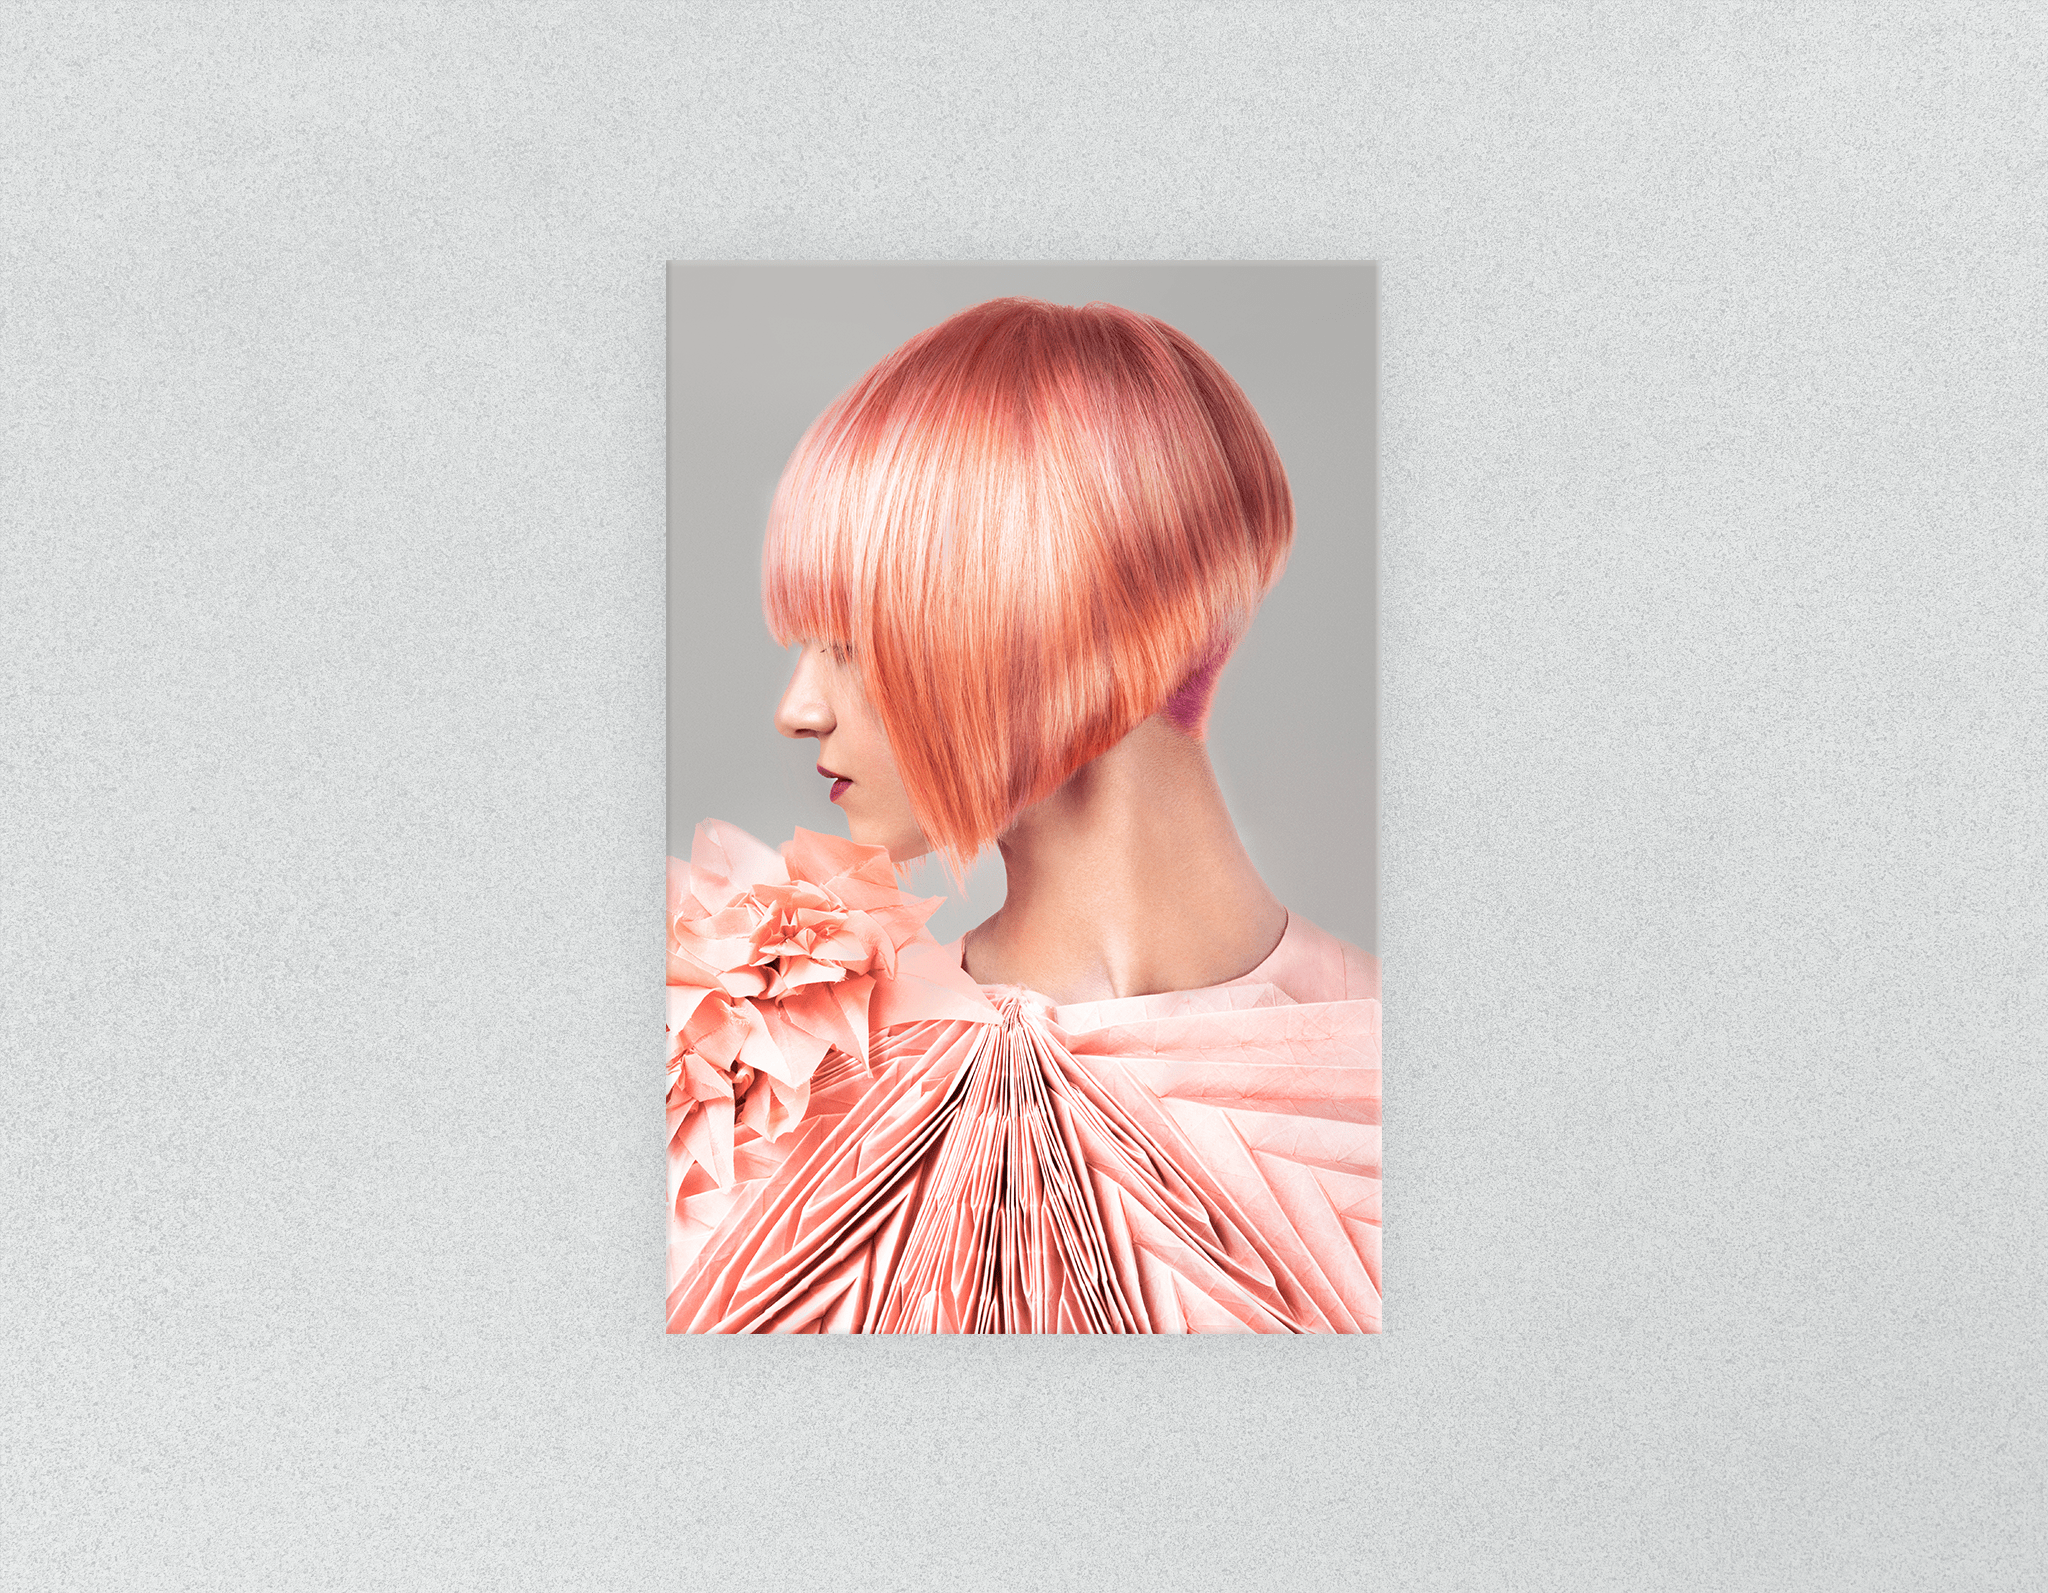 Plastic Salon Posters: Woman with Pink Colored Bob Hairstyle